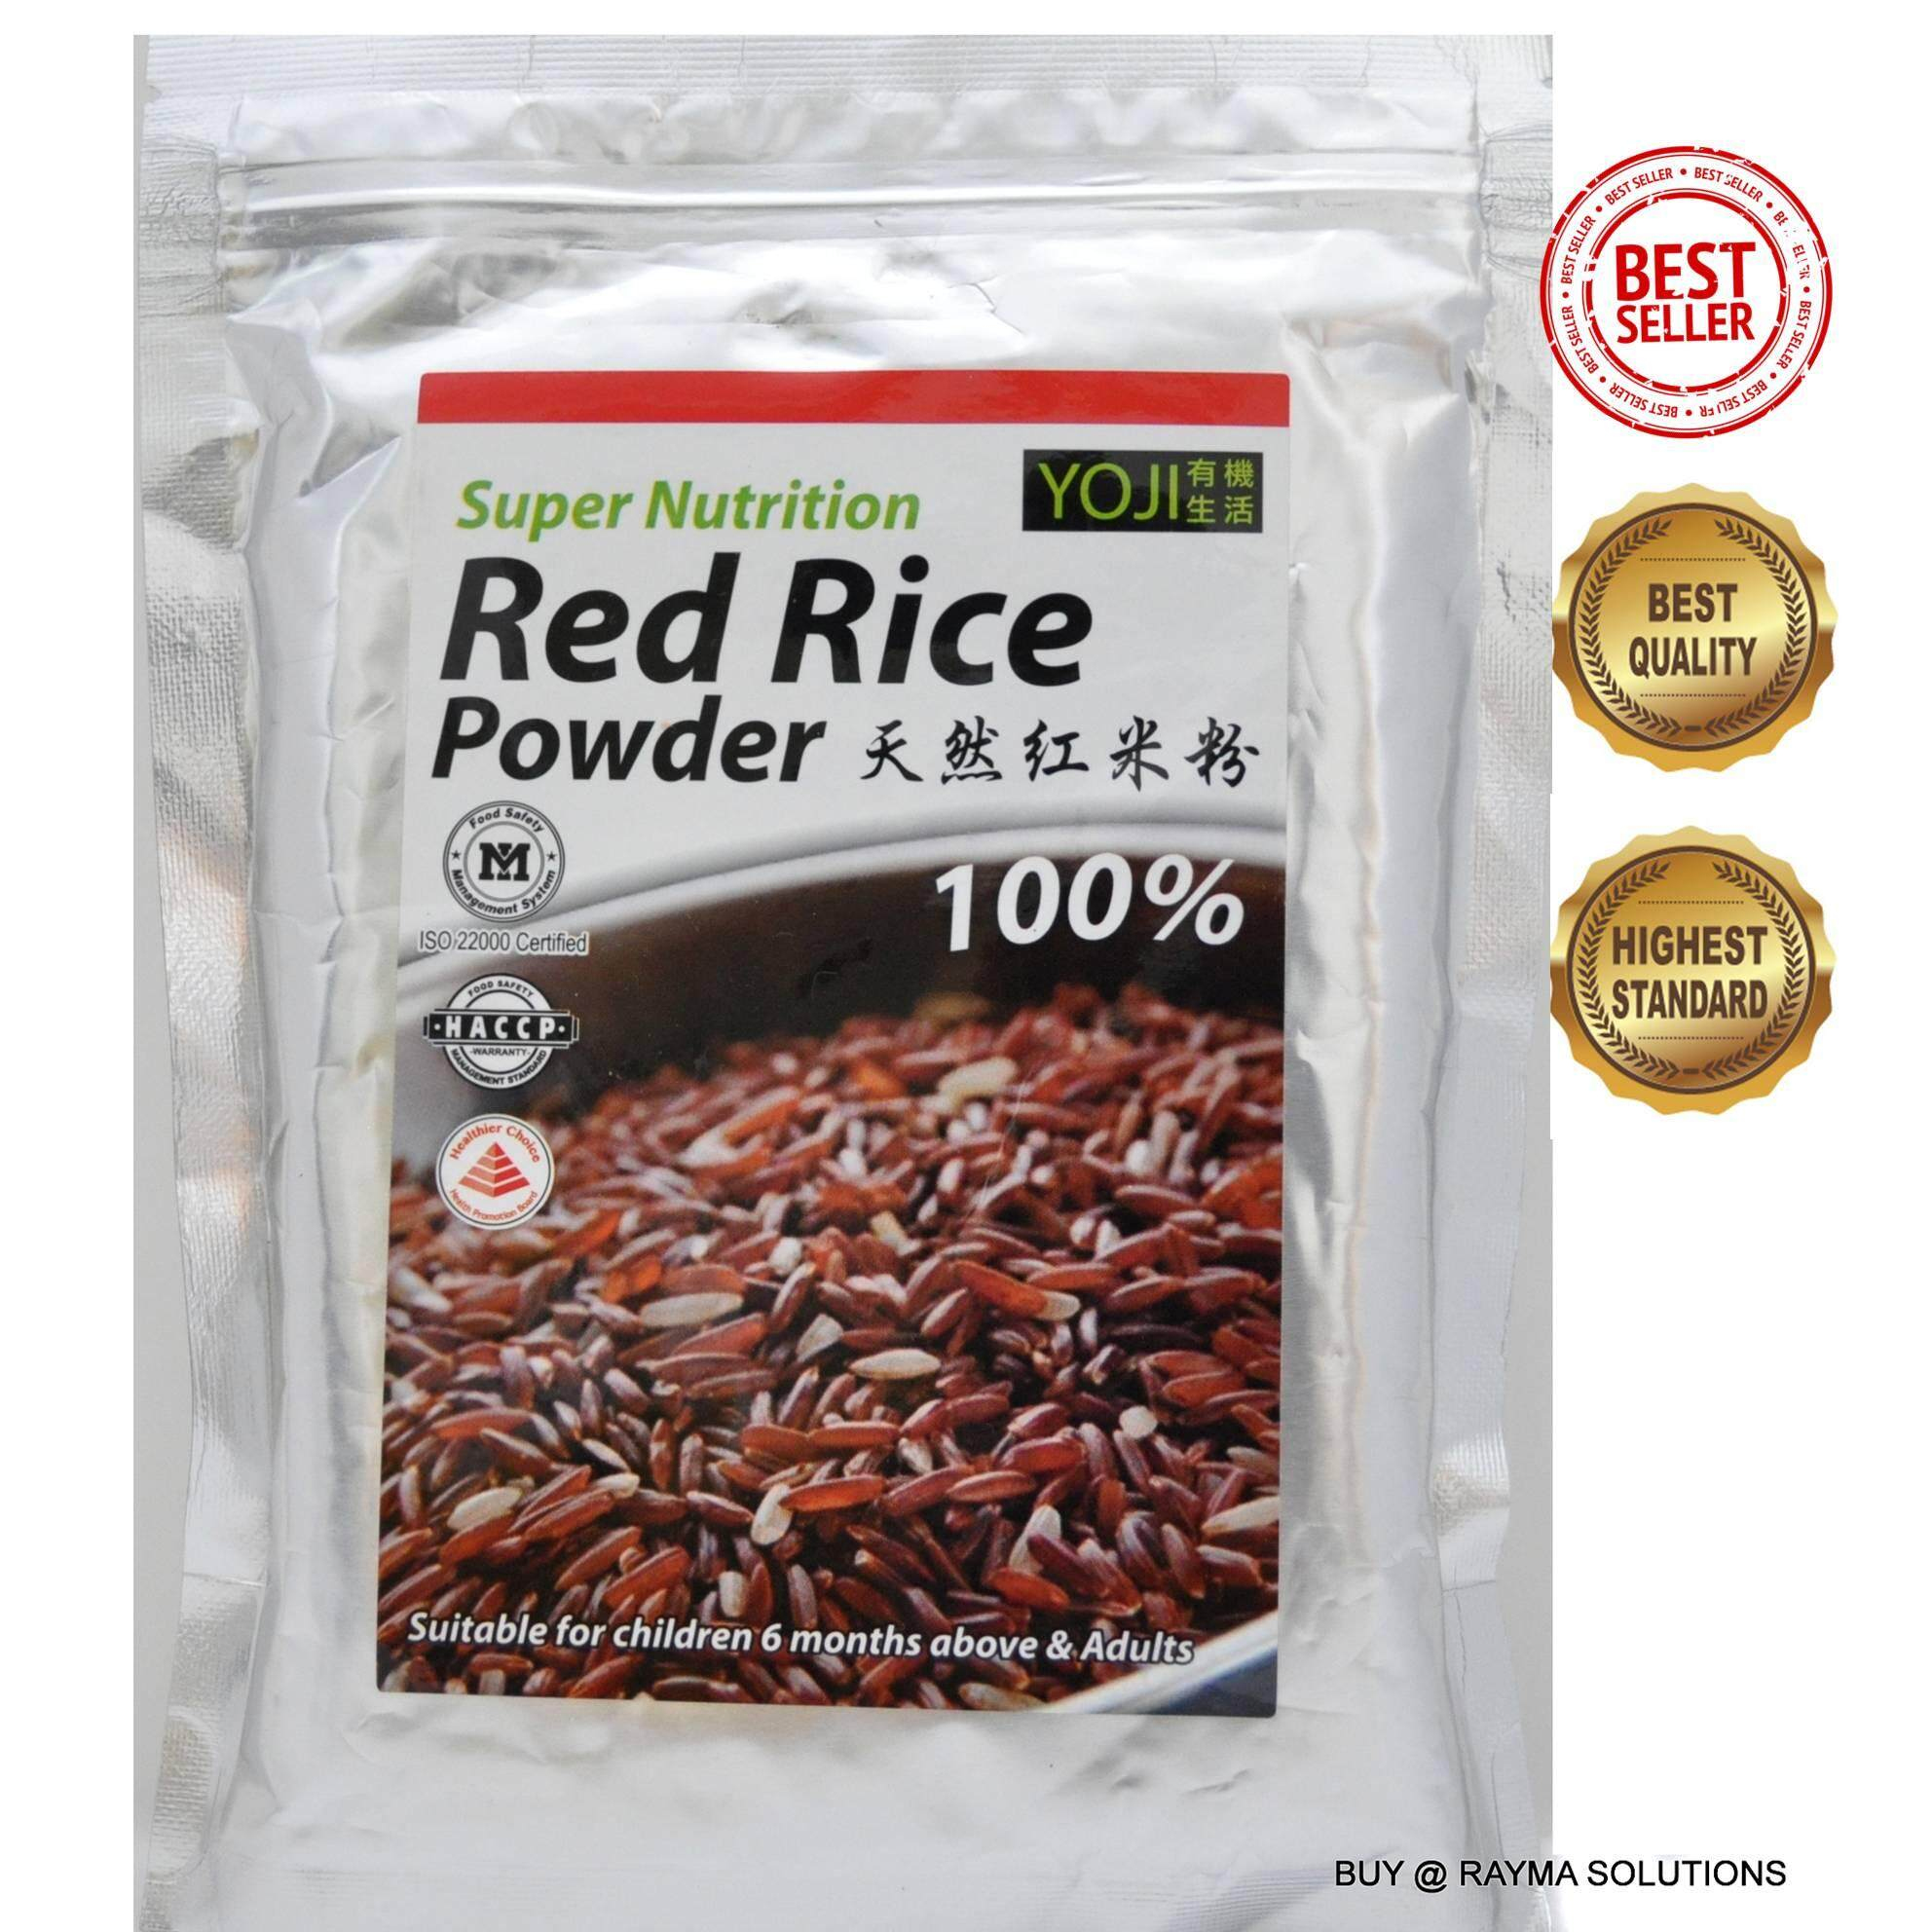 MH FOOD Super Nutrition Red Rice Powder, Suitable for children 6 months above and adults 300g